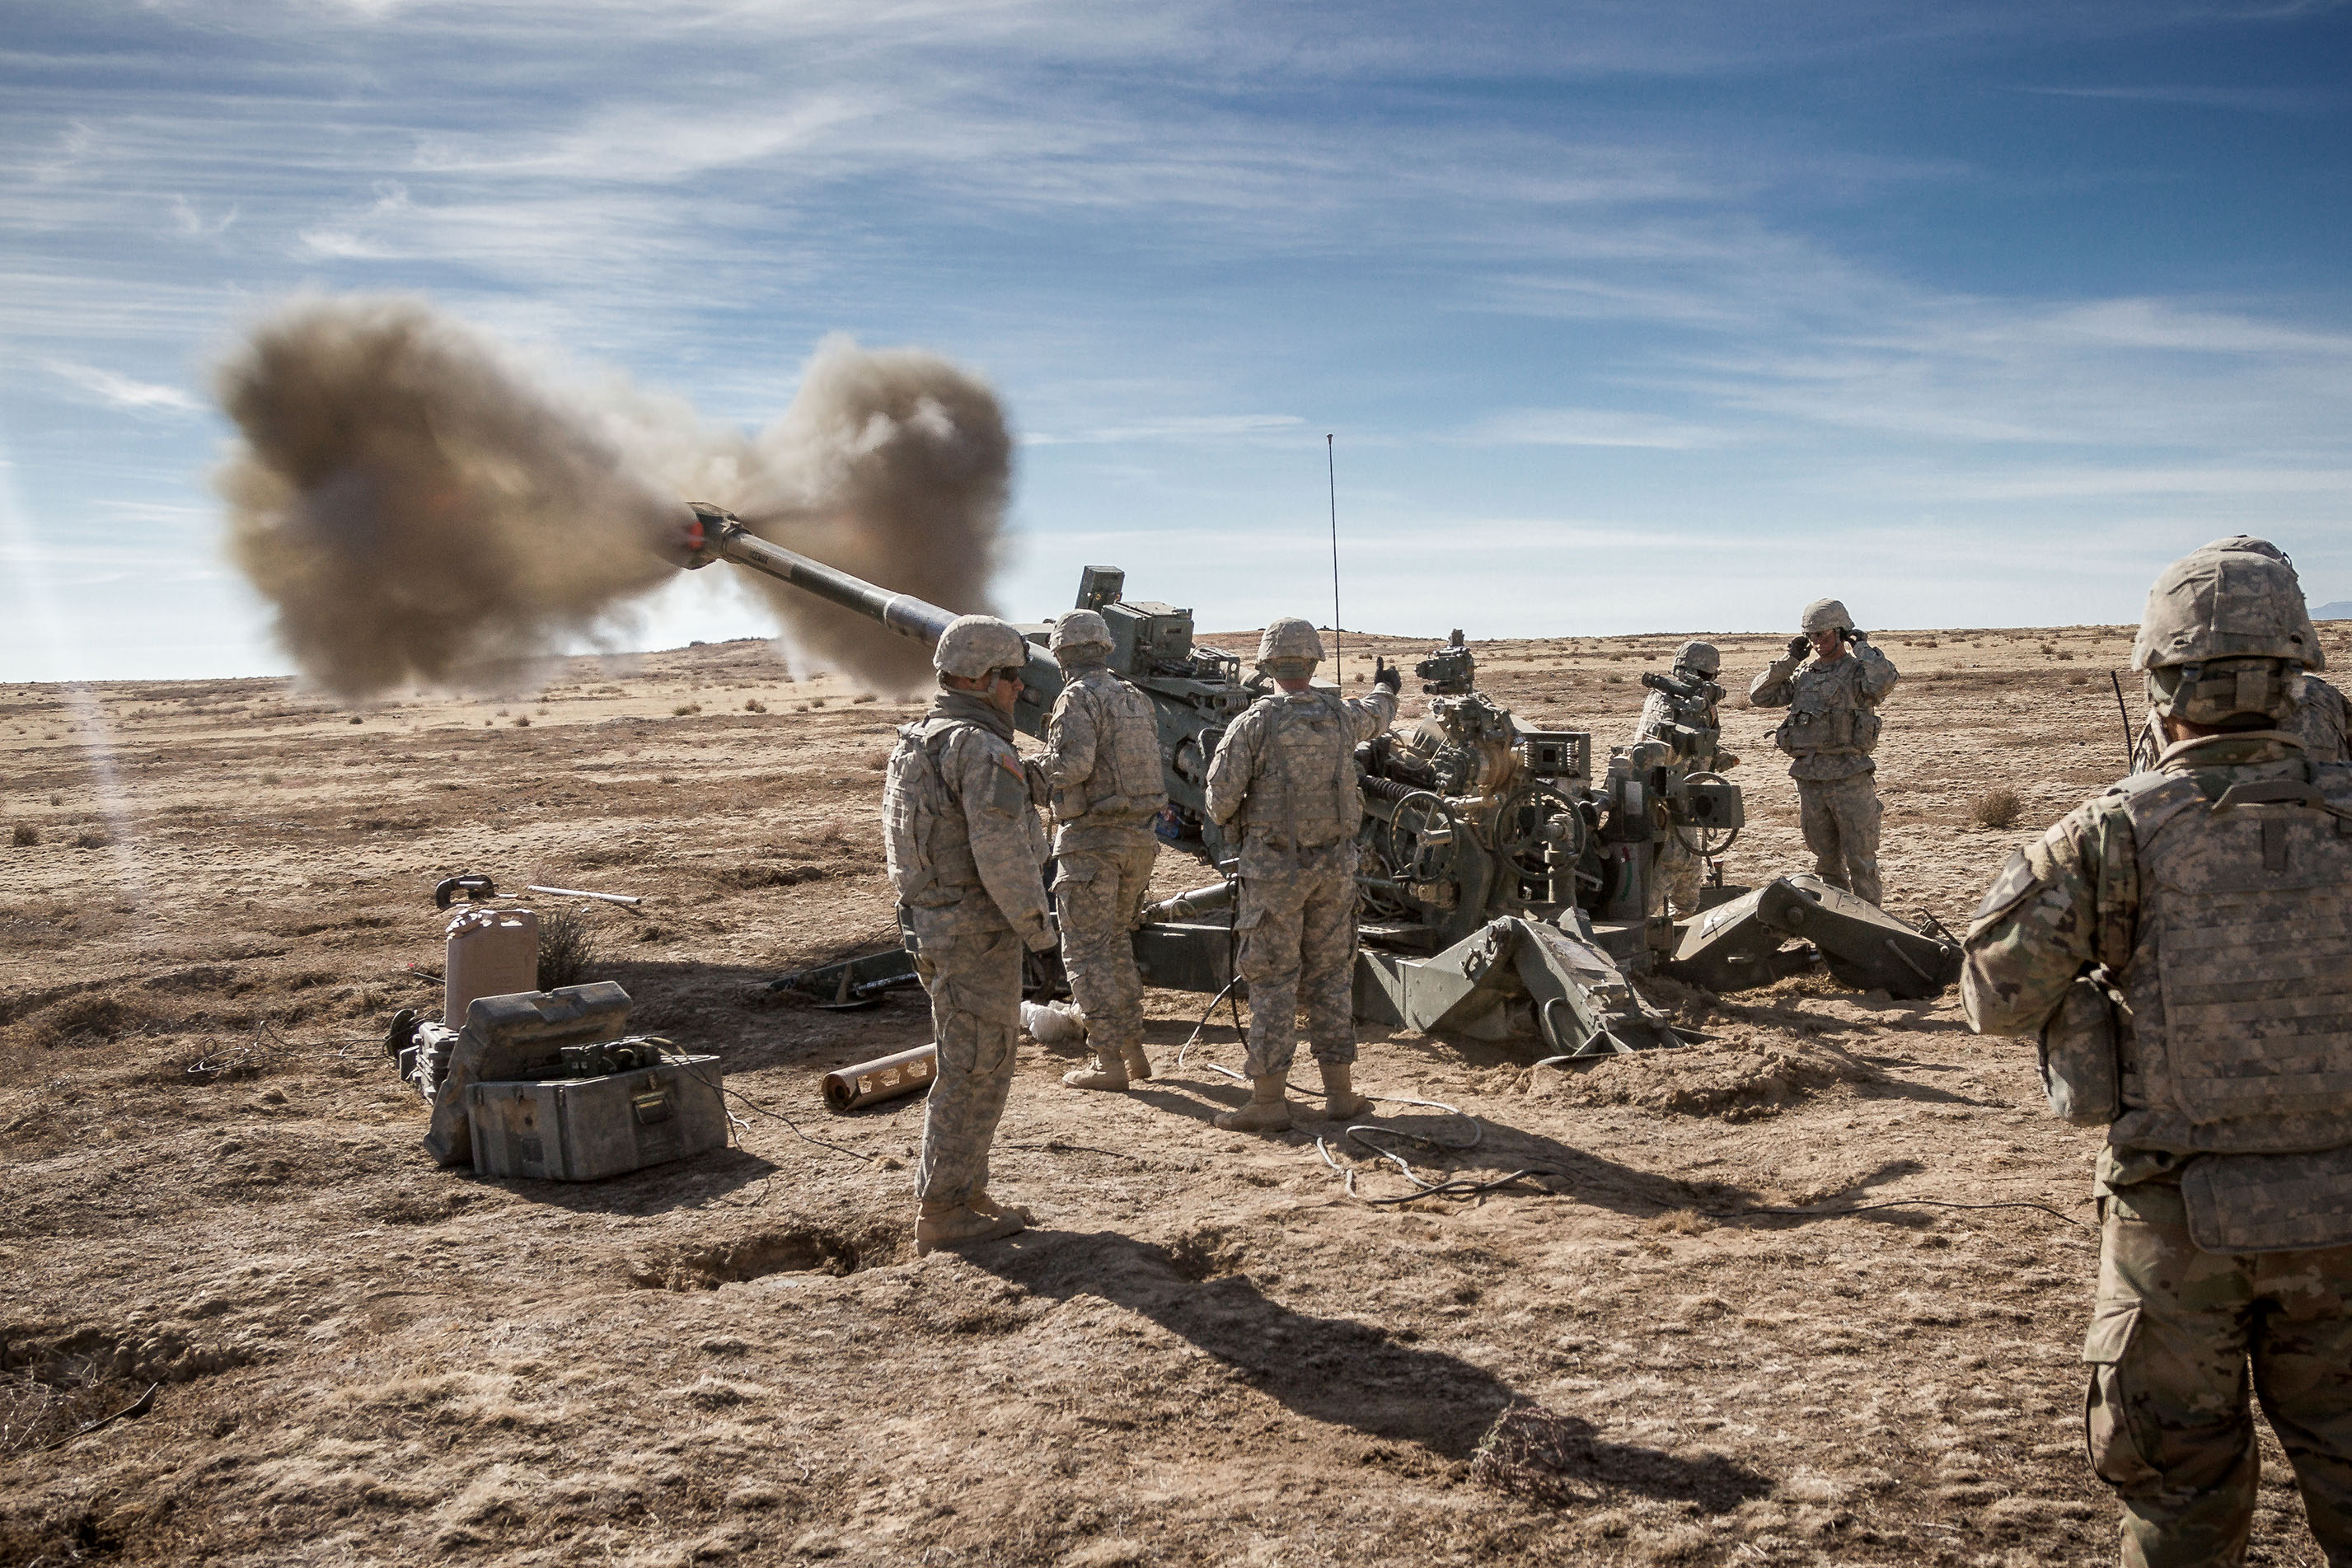 Soldiers assigned to 2nd Infantry Division Artillery, 7th Infantry Division (ID) fire an M777 155 mm howitzer at Orchard Combat Training Center, Idaho, in October 2016. They were part of a group of more than 1,000 7th ID Soldiers participating in Raptor Fury, a training exercise to validate the 16th Combat Aviation Brigade's mission readiness. PEO Ammunition is exploring several new ammunition capabilities that will improve the lethality of 155 mm artillery while minimizing its impact on friendly troops and noncombatants. (Photo by Capt. Brian Harris, 16th Combat Aviation Brigade)